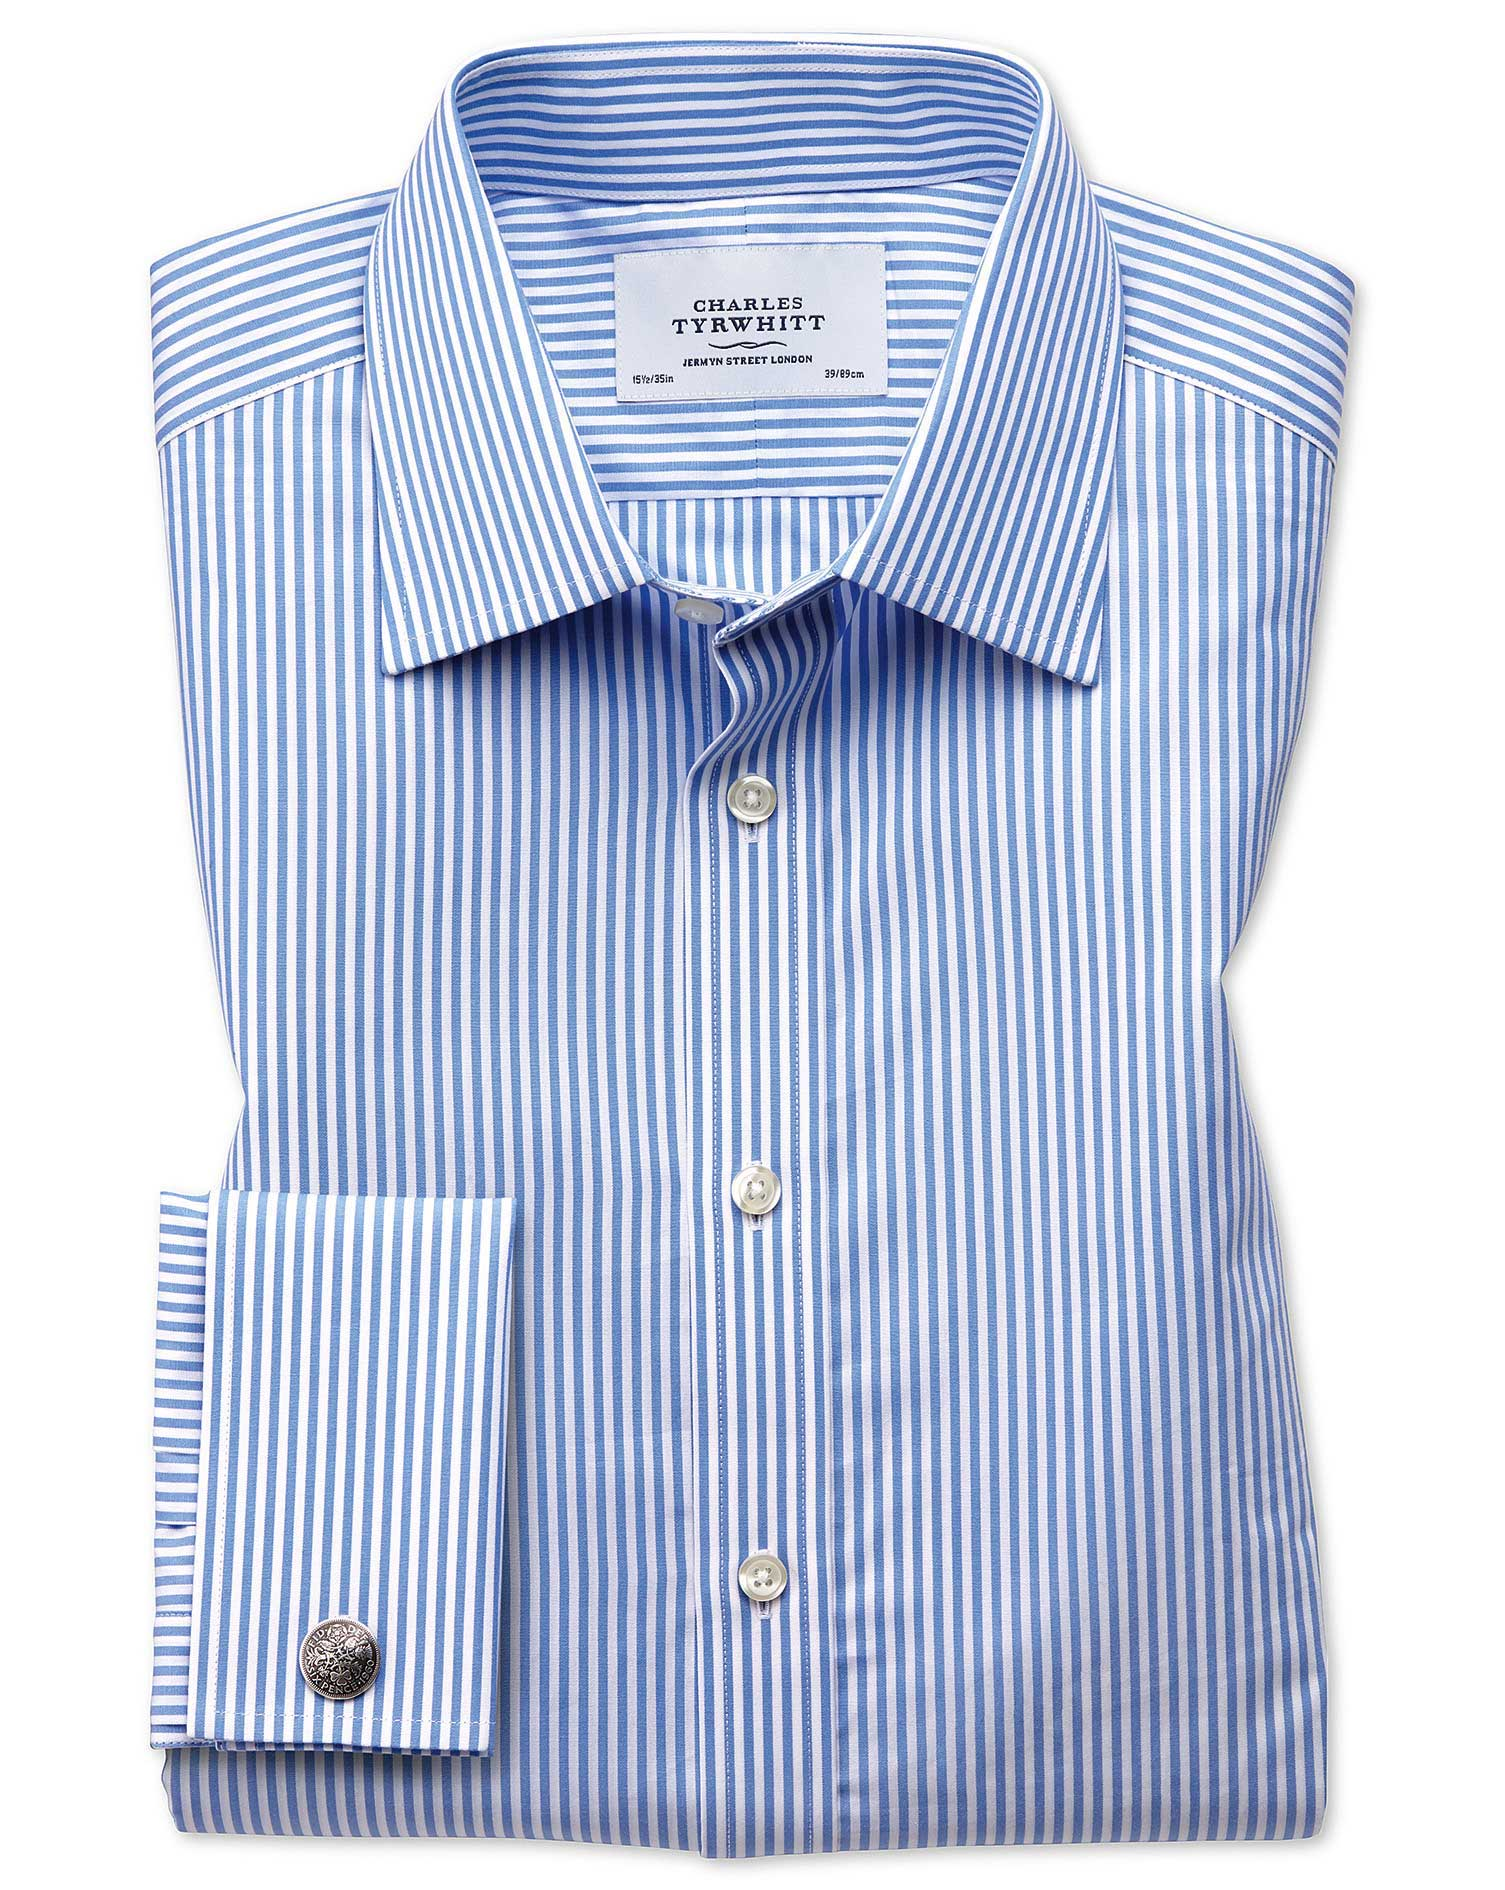 Extra Slim Fit Bengal Stripe Sky Blue Cotton Formal Shirt Double Cuff Size 16/36 by Charles Tyrwhitt from Charles Tyrwhitt